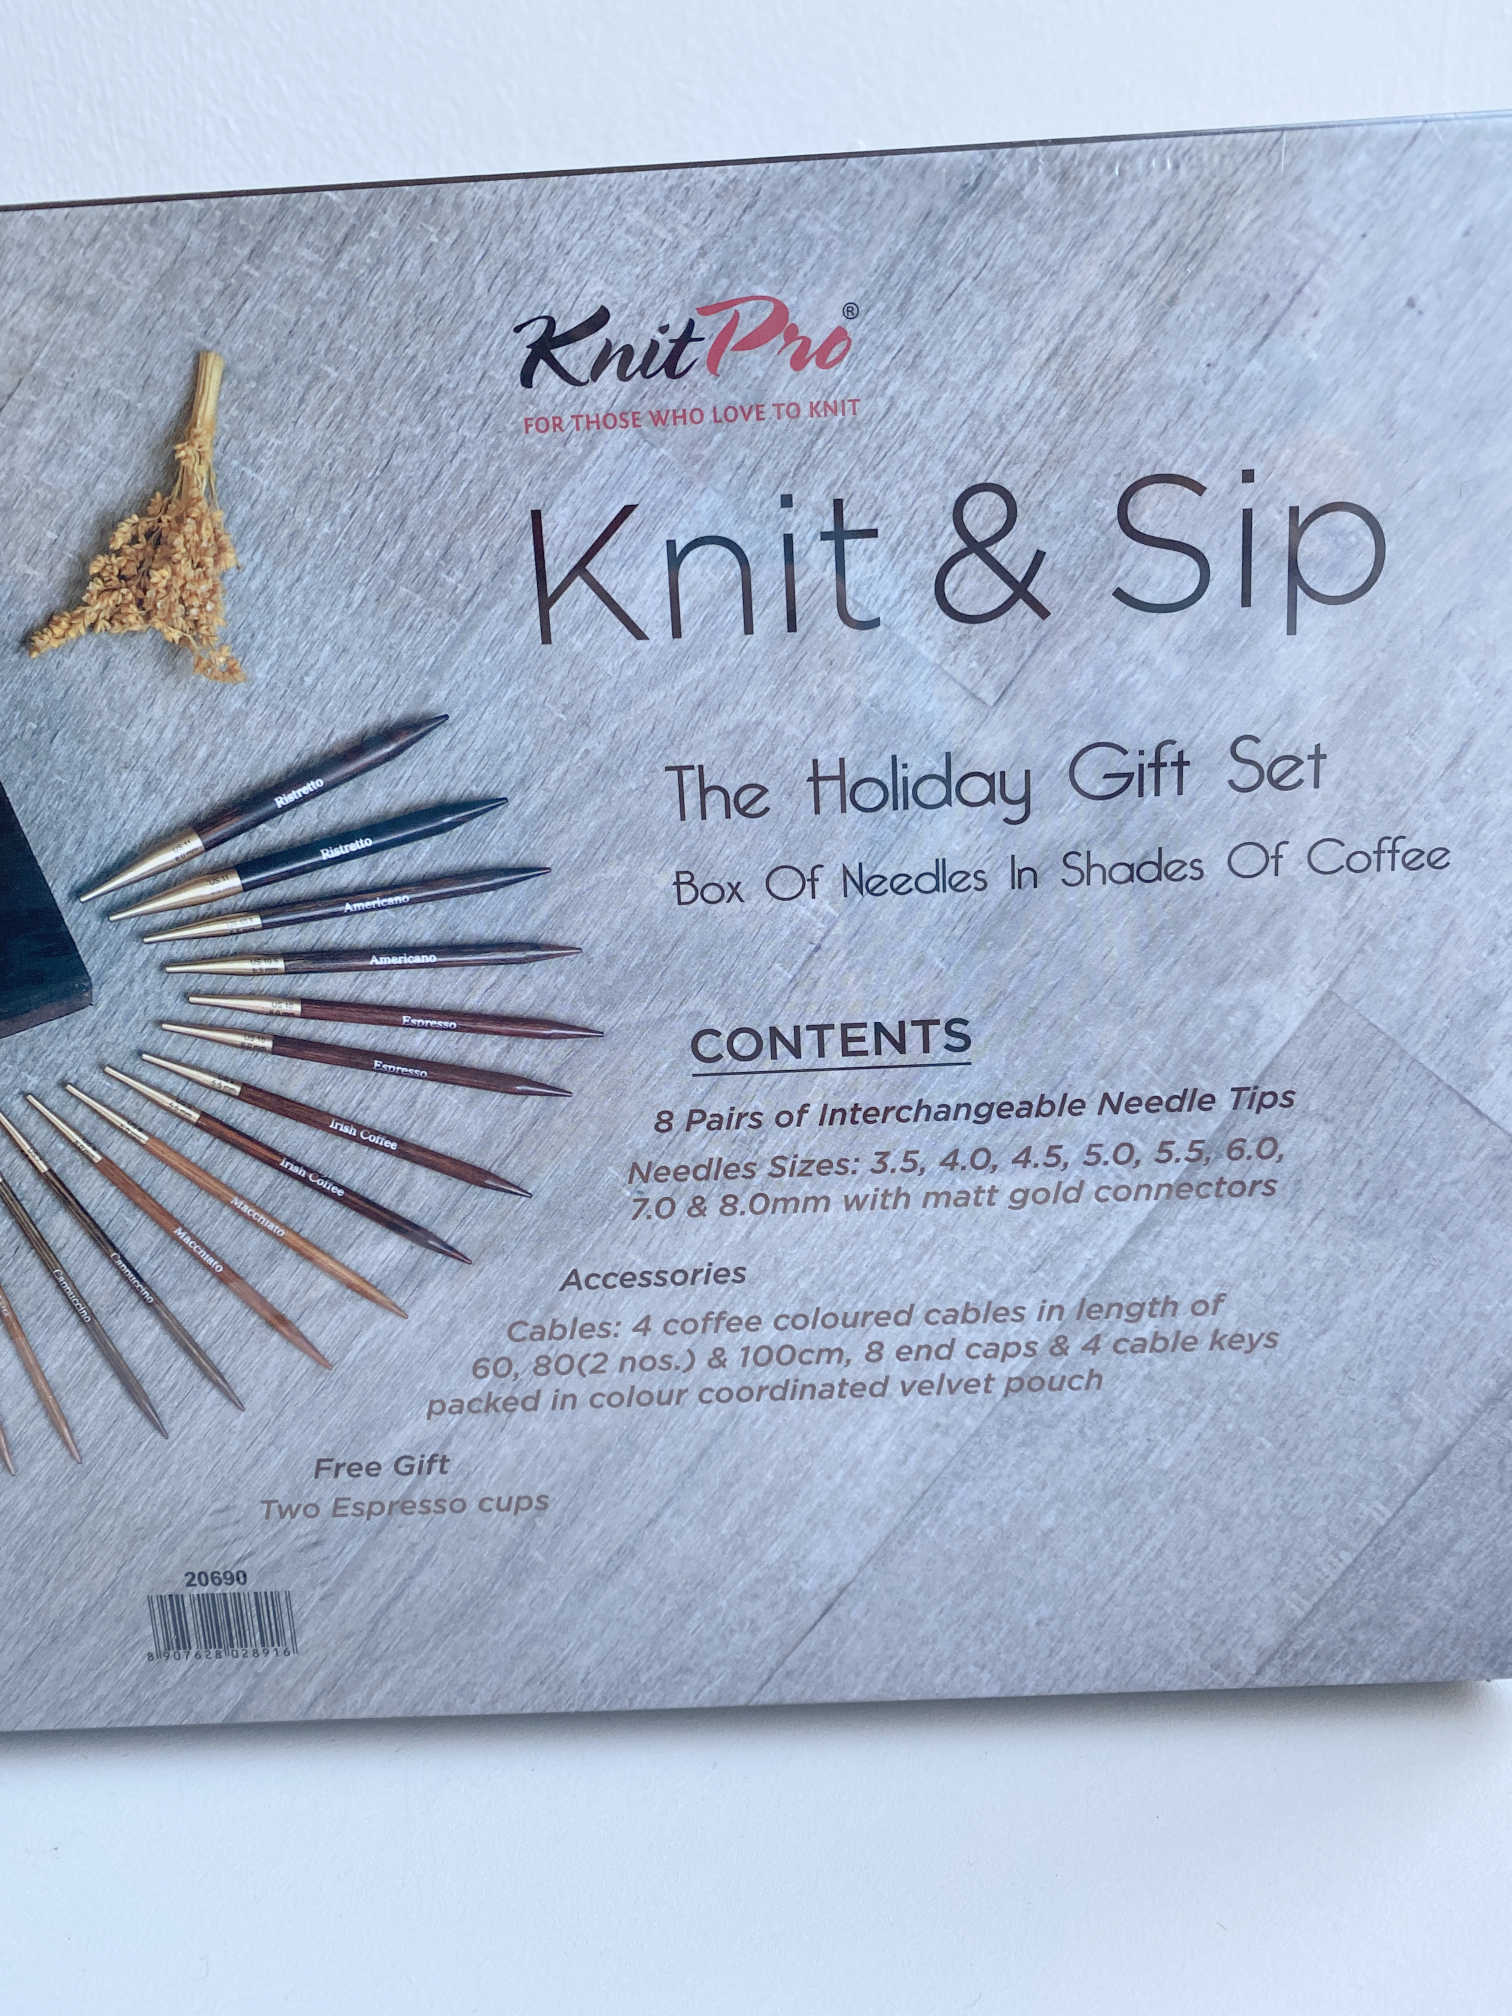 Knit Pro Limited Edition 2020 Knit and Sip